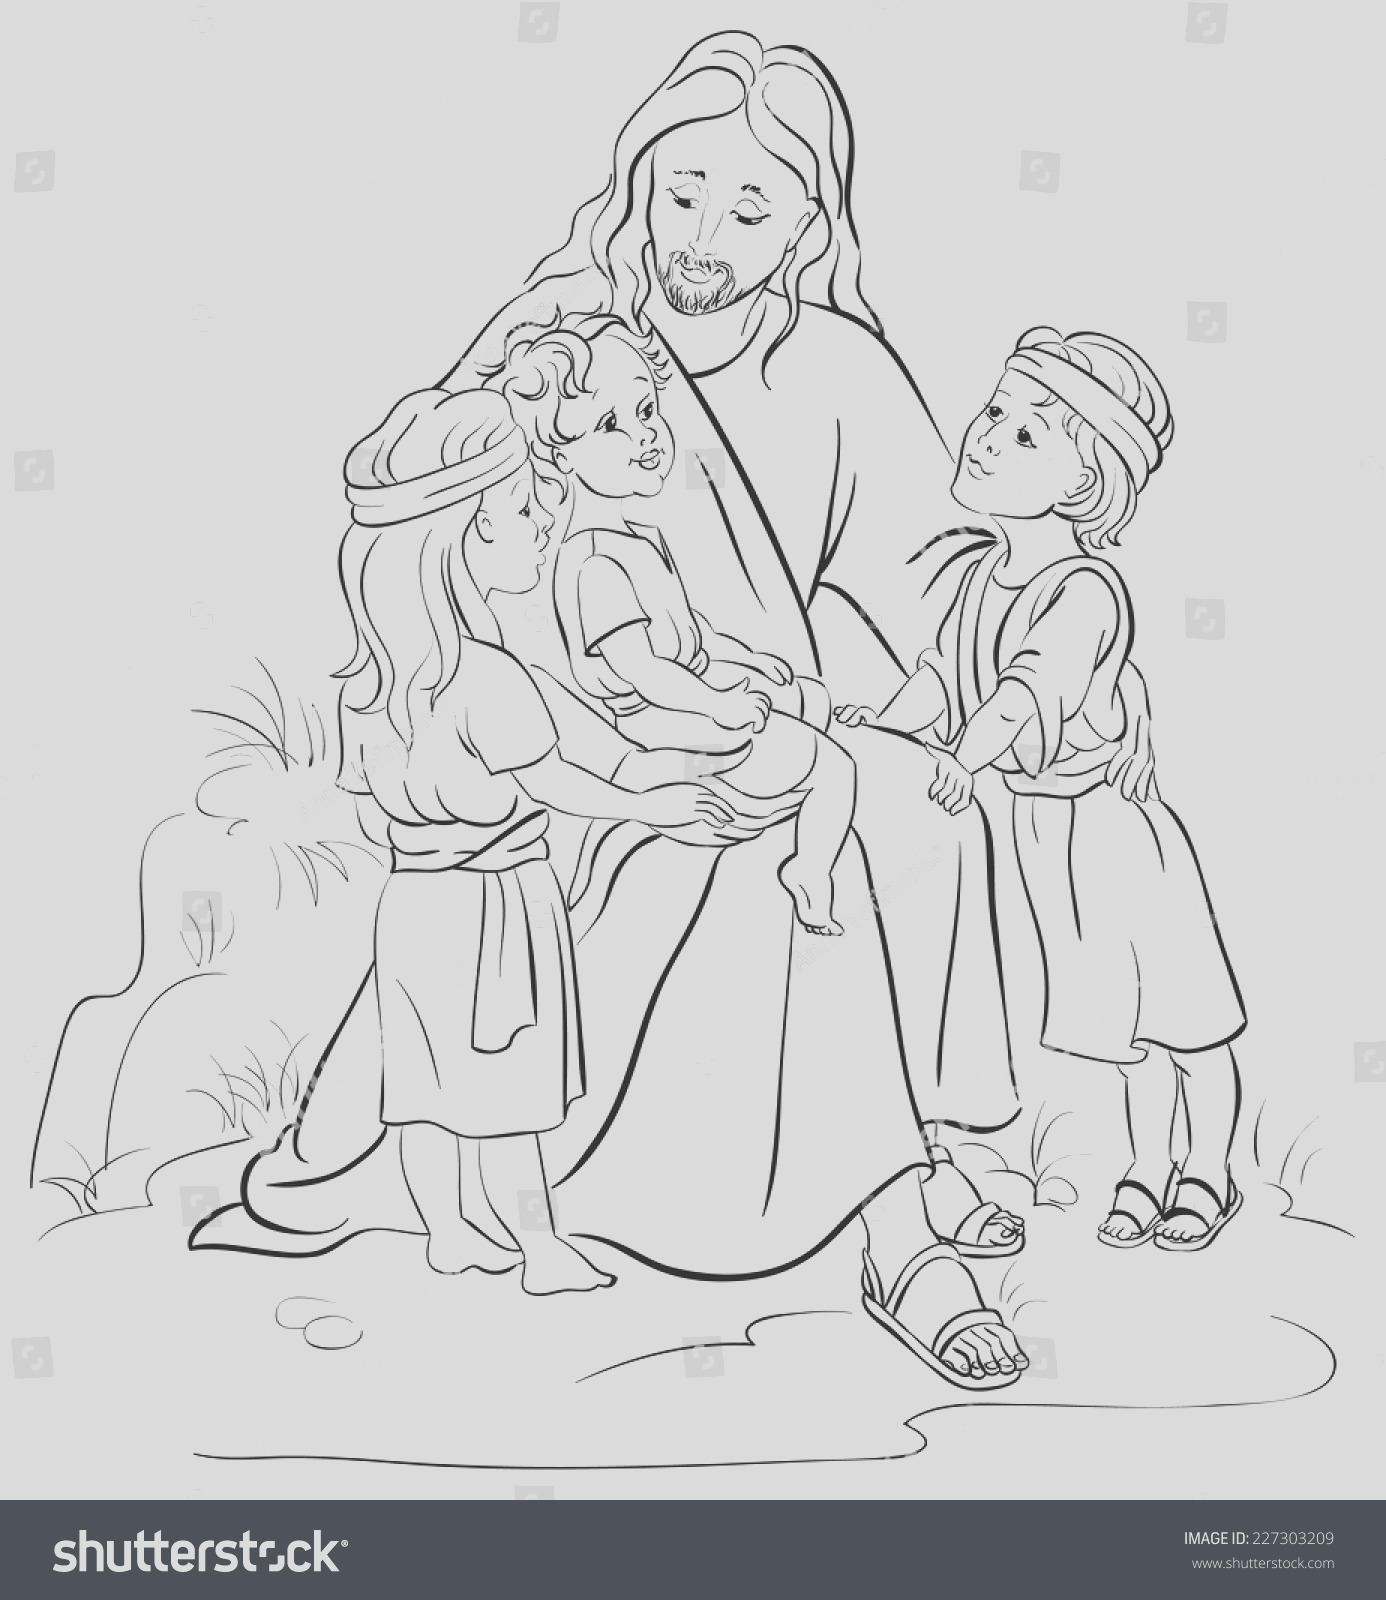 bible story jesus children coloring page